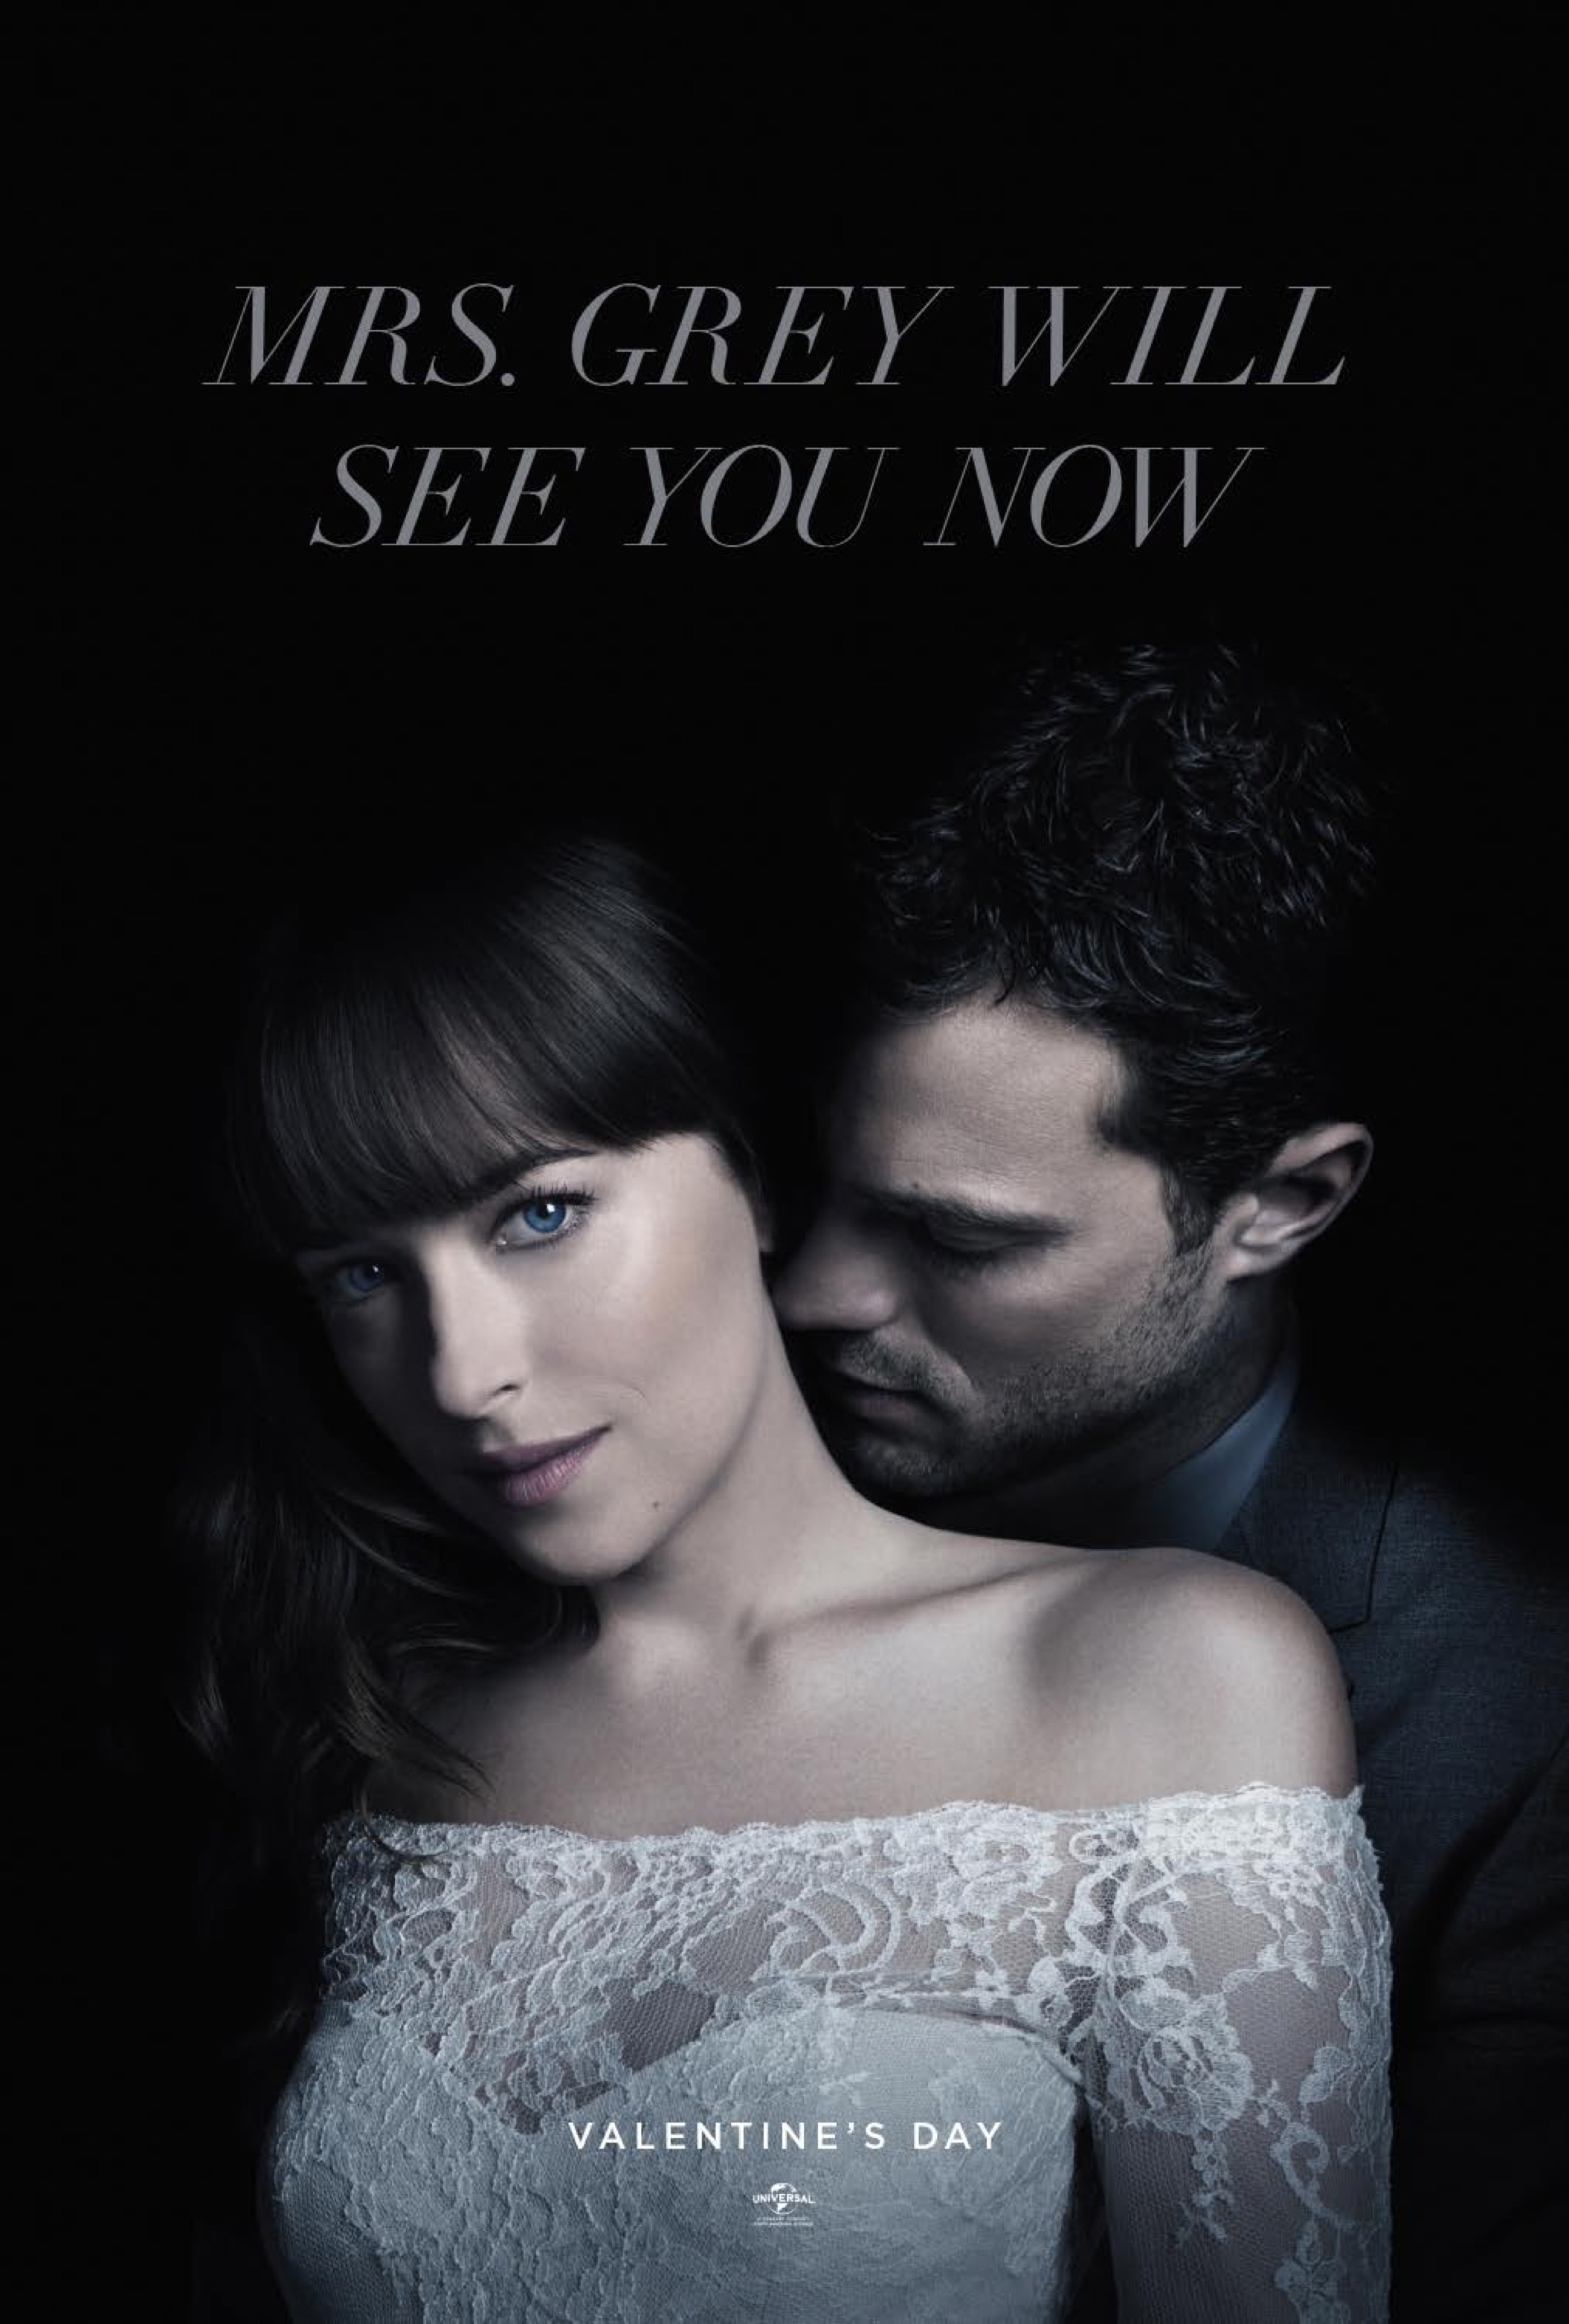 Fifty Shades of Freed - First look poster